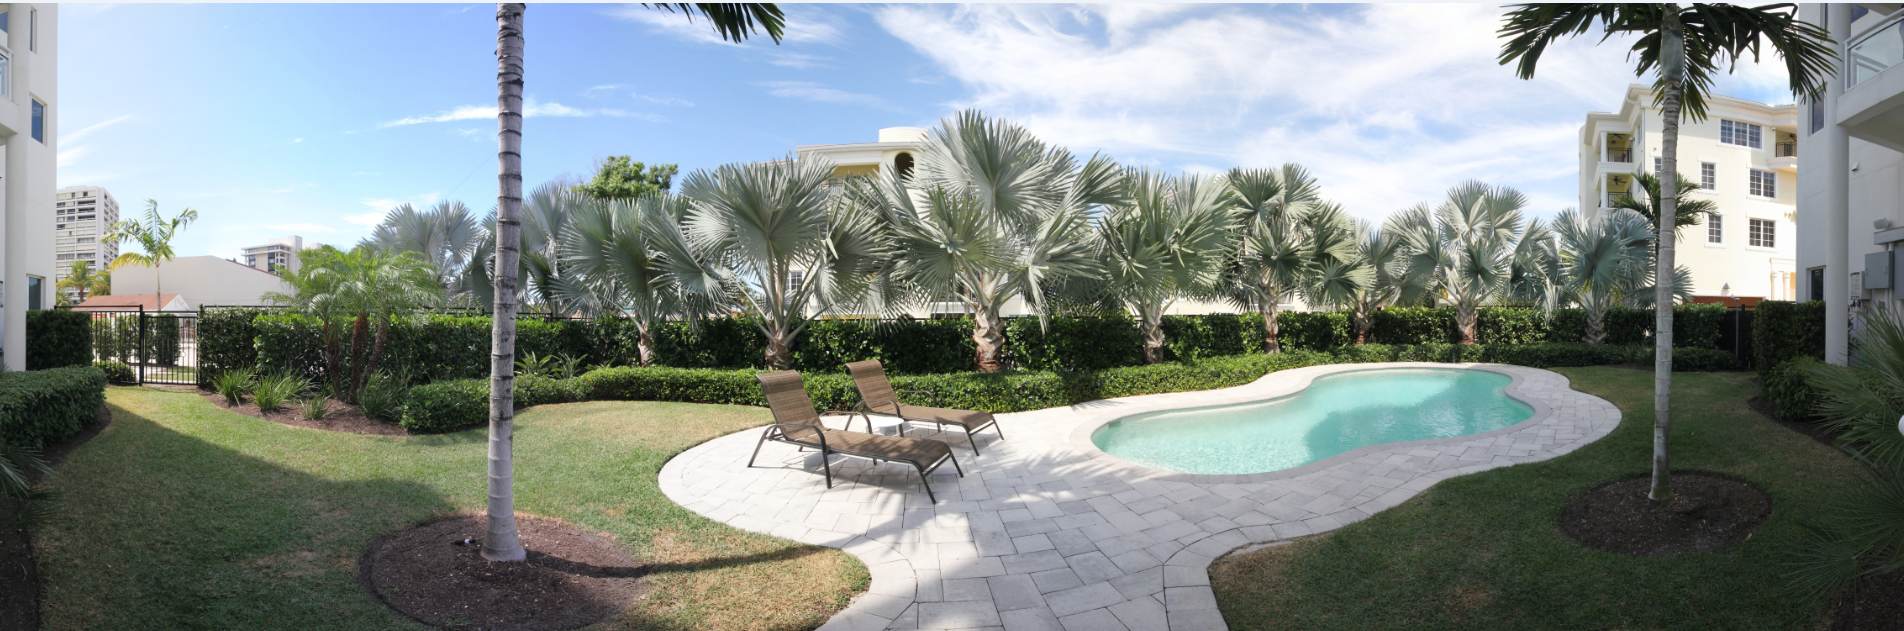 Siesta Beach Villas3